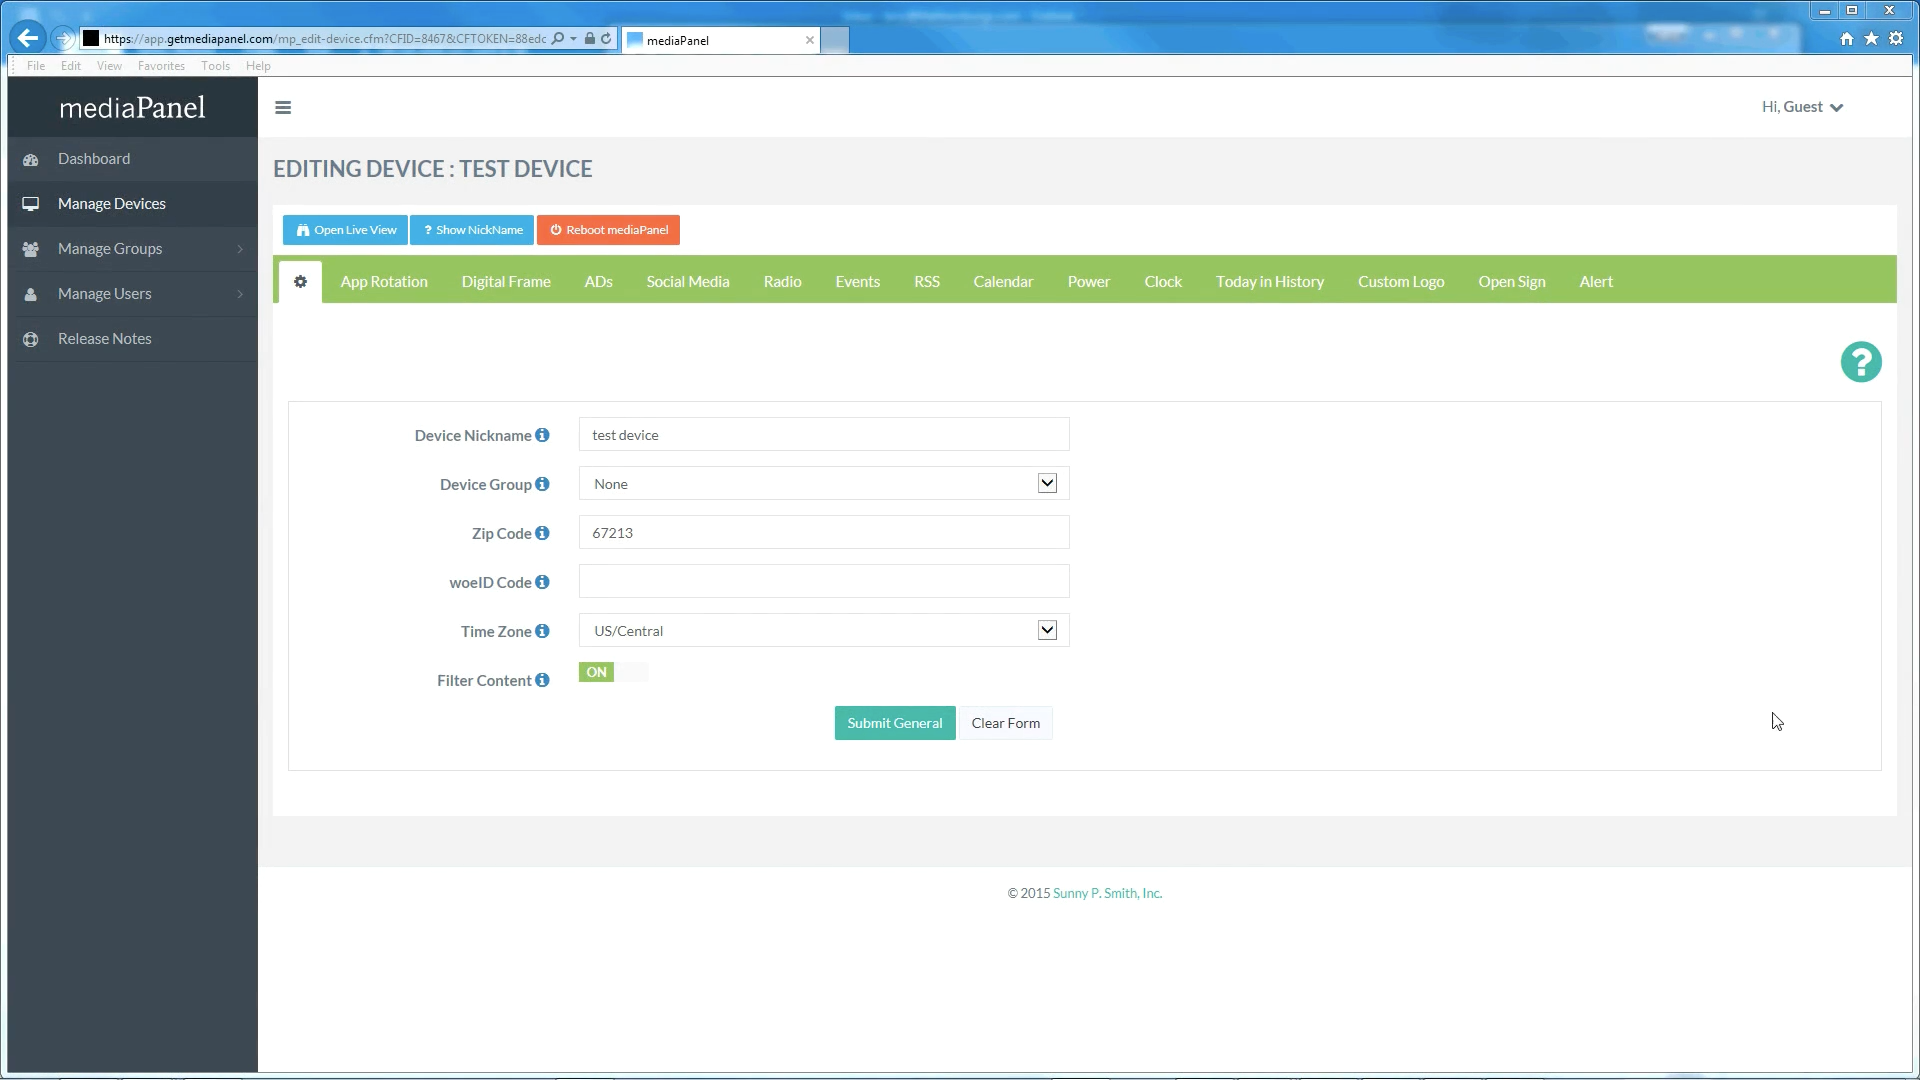 Configure all applications for each device including ads, social media, events, RSS and more